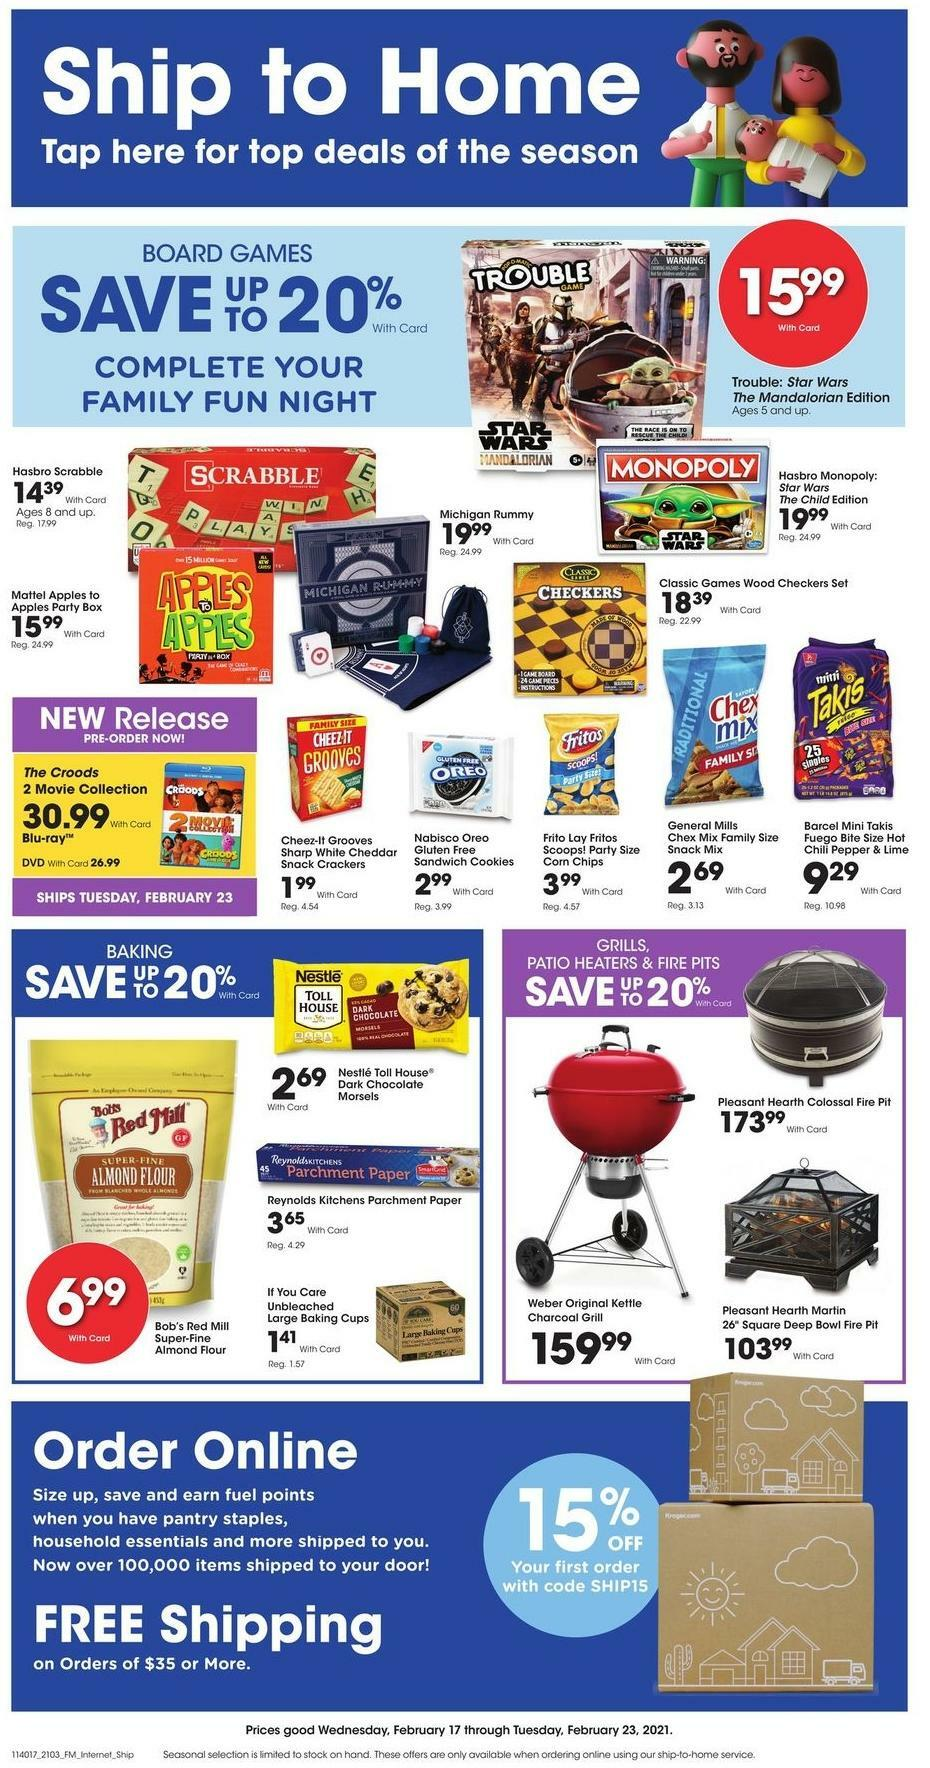 Kroger Ship to Home Weekly Ad from February 17